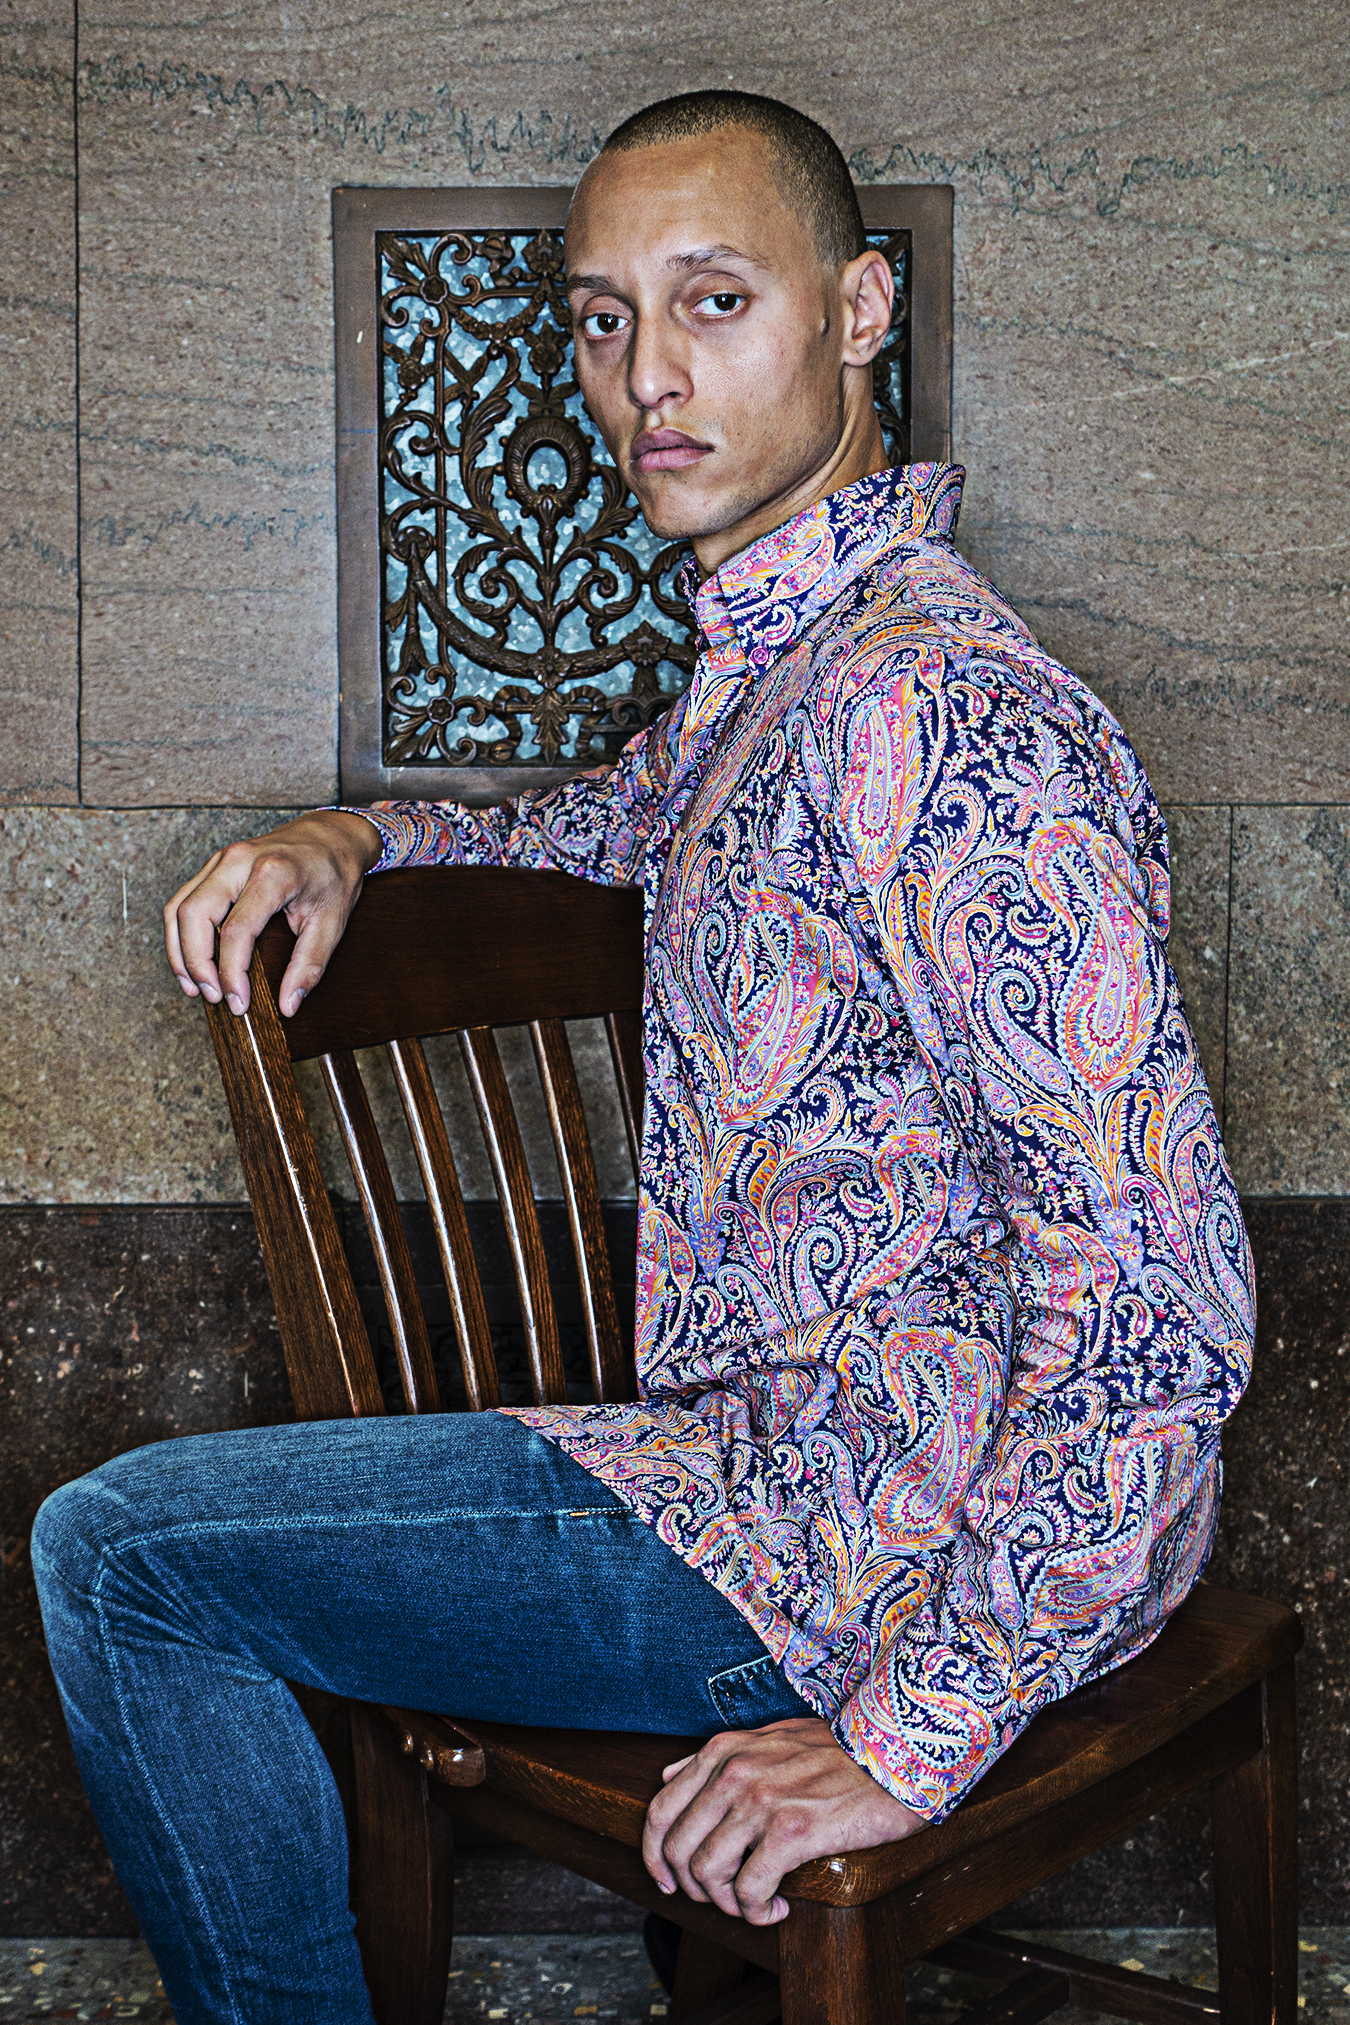 Tony_Ward_Studio_article_Julian_Domanico_courtroom_city_hall_old_school_shirtmakers_new_york_blue_jeans_paisley